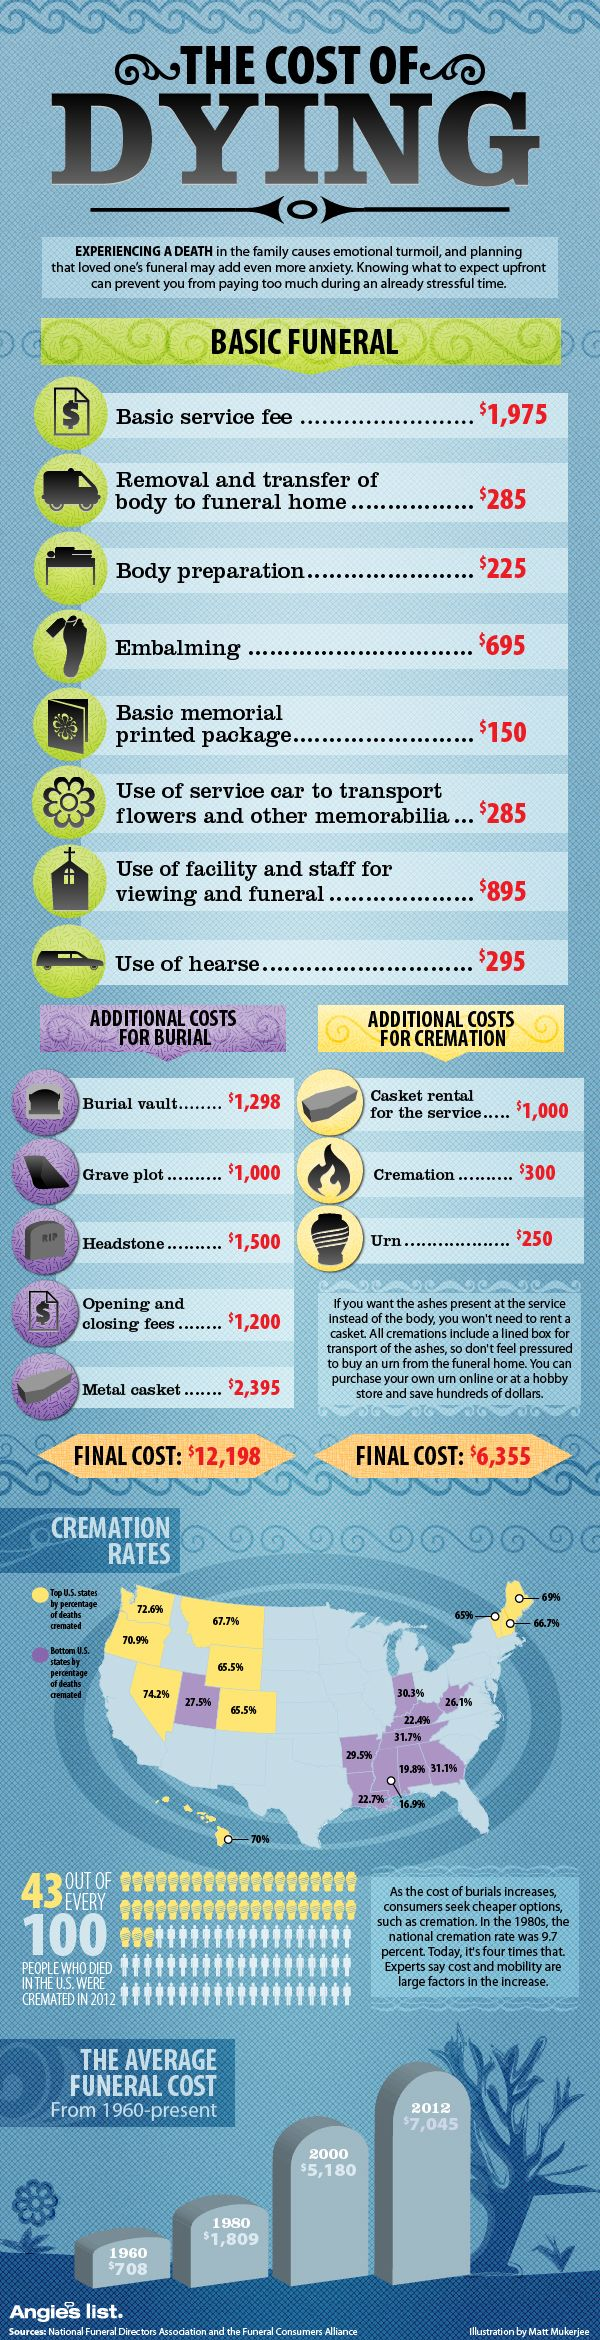 #FuneralPlanning- The cost of dying. Shows the average national cost for funerals, burials and cremations. http://www.thefuneralsource.org/planning.html